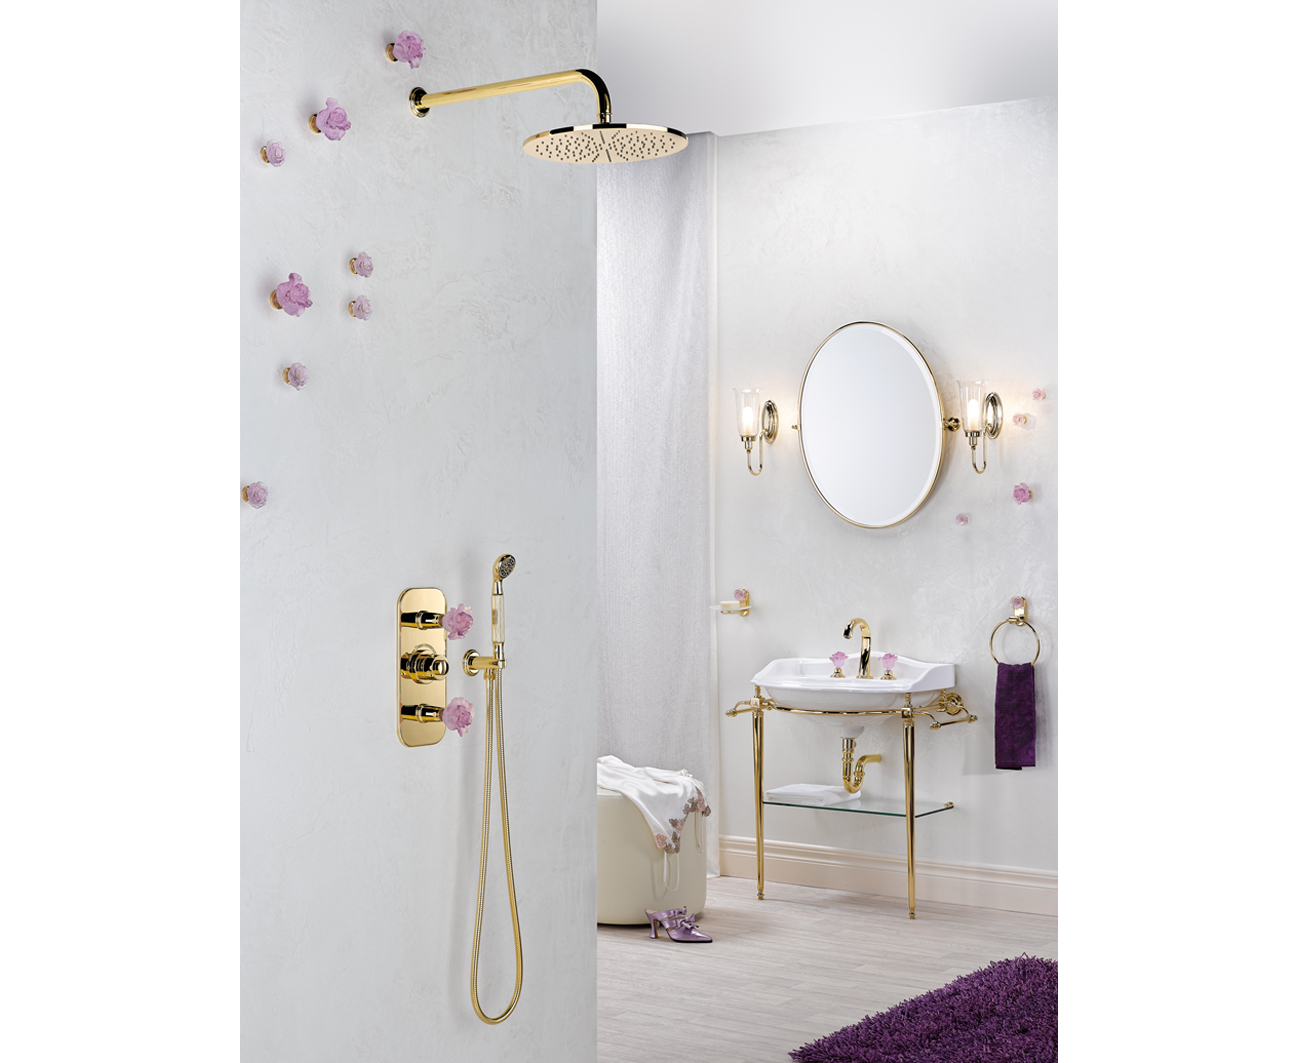 Bathroom Design Flowers